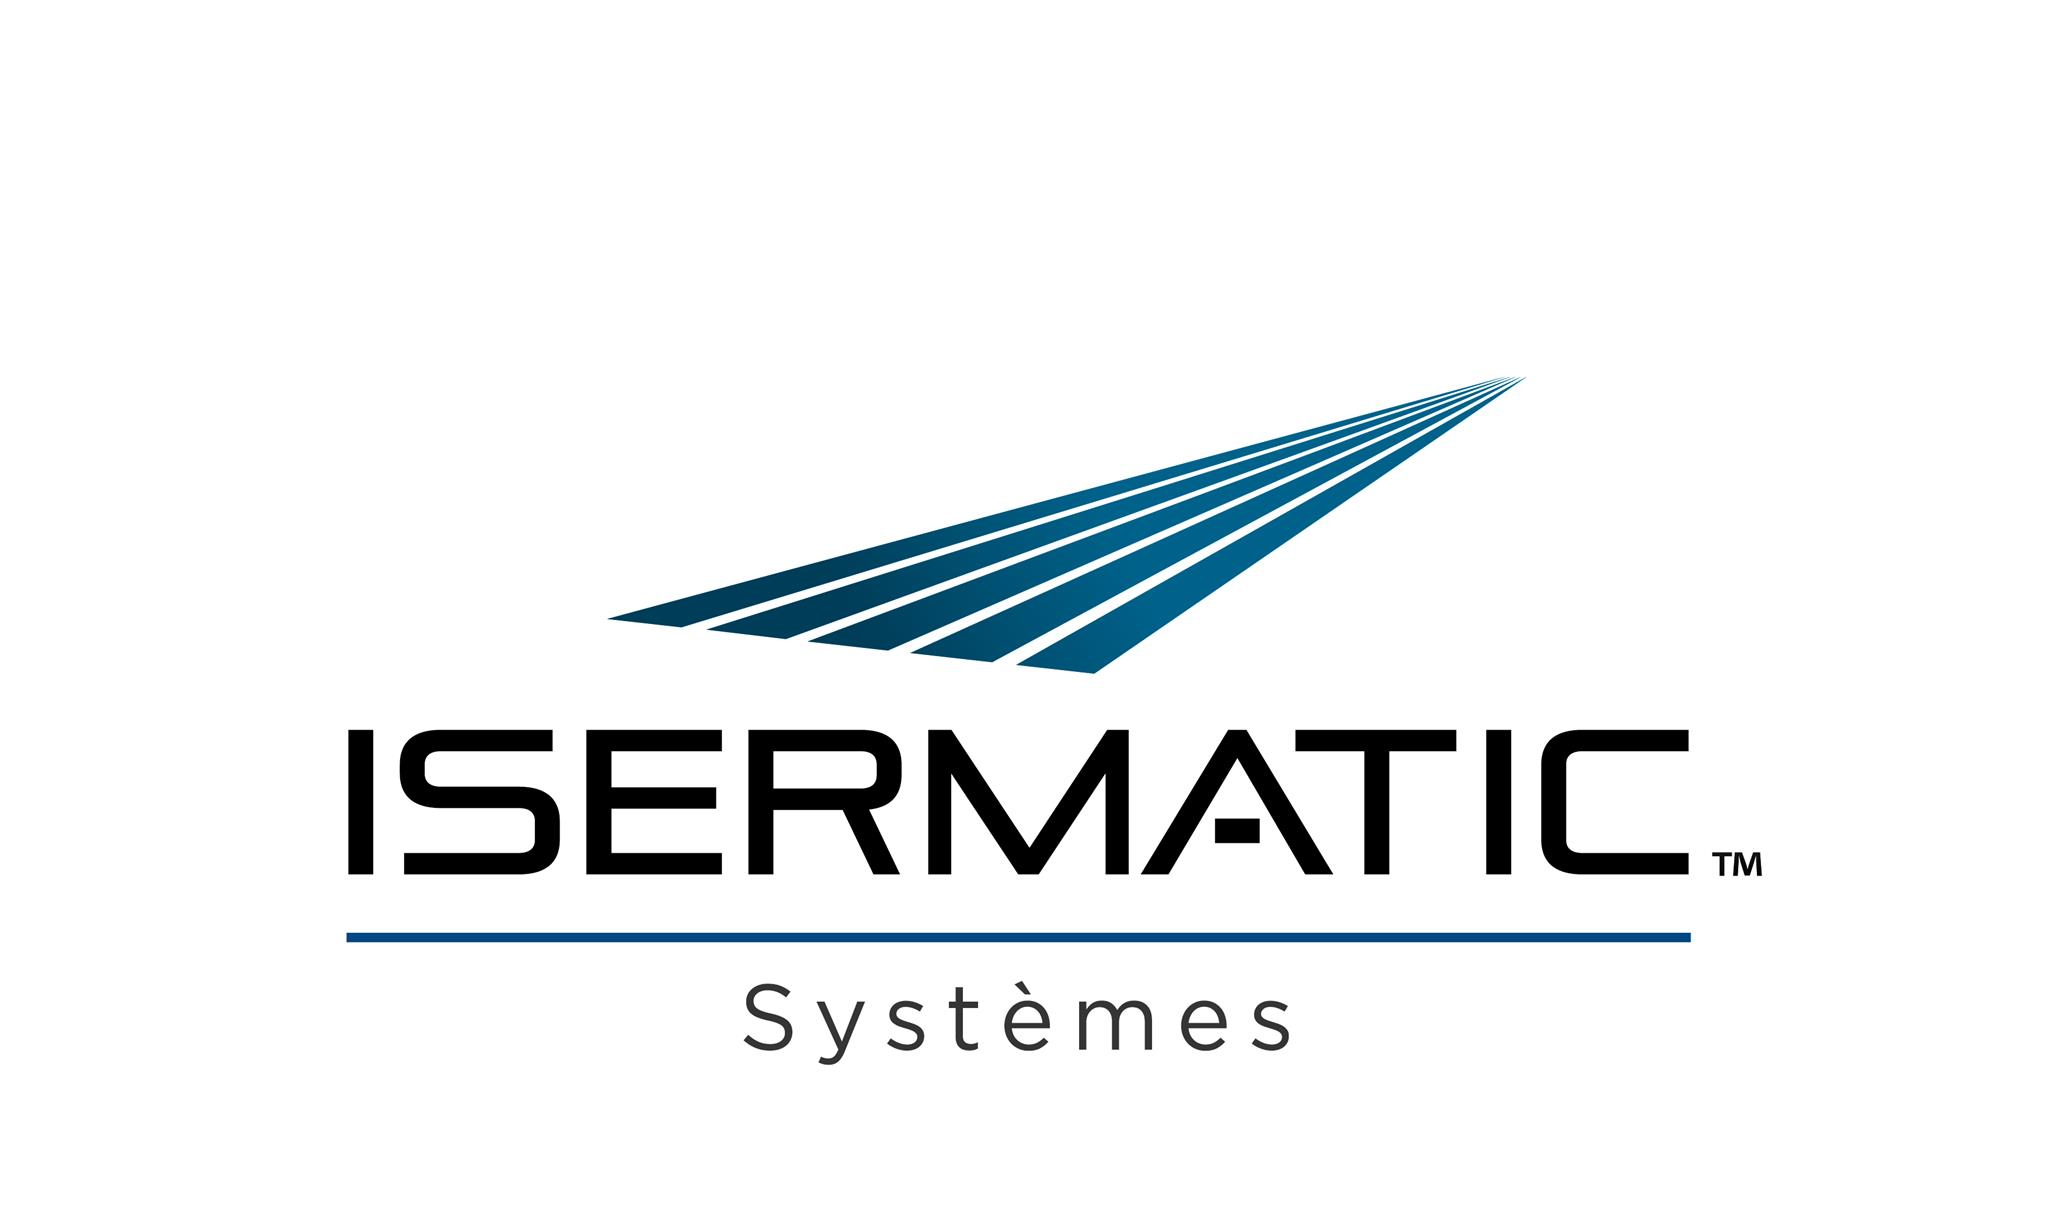 ISERMATIC SYSTEMES